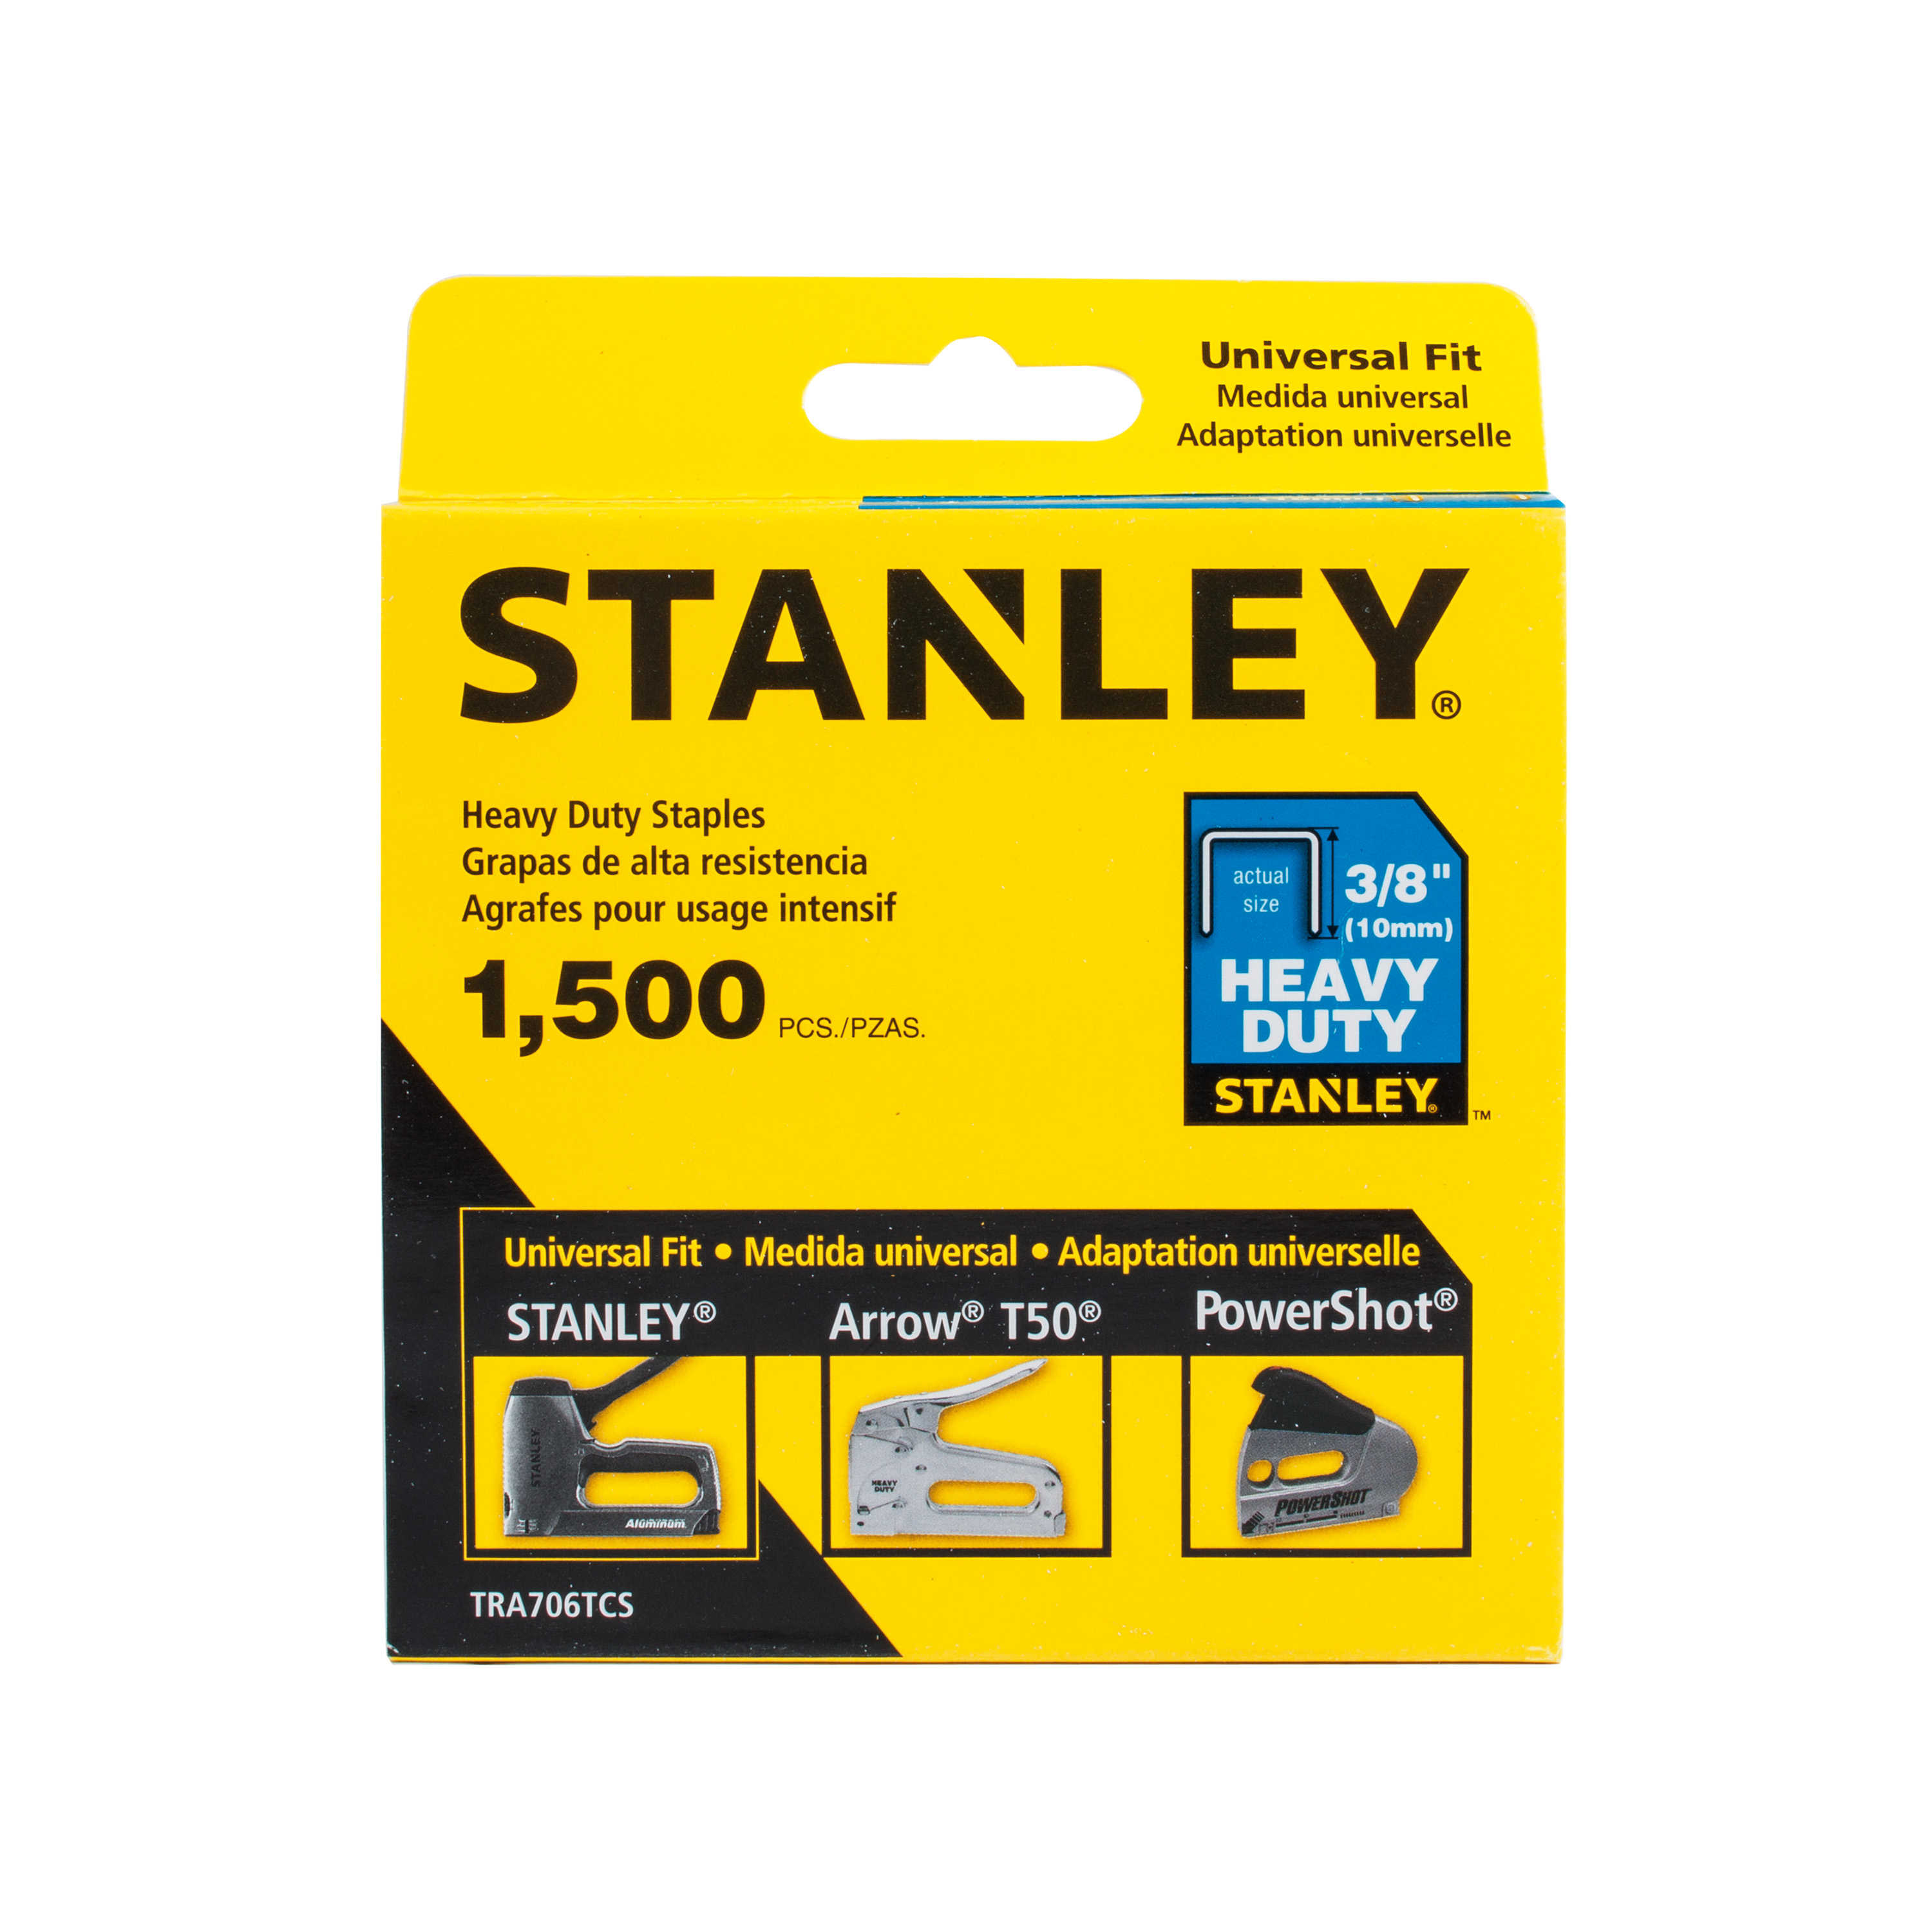 STANLEY TRA706TCS 3/8' Heavy-Duty Staples, 1500 Count